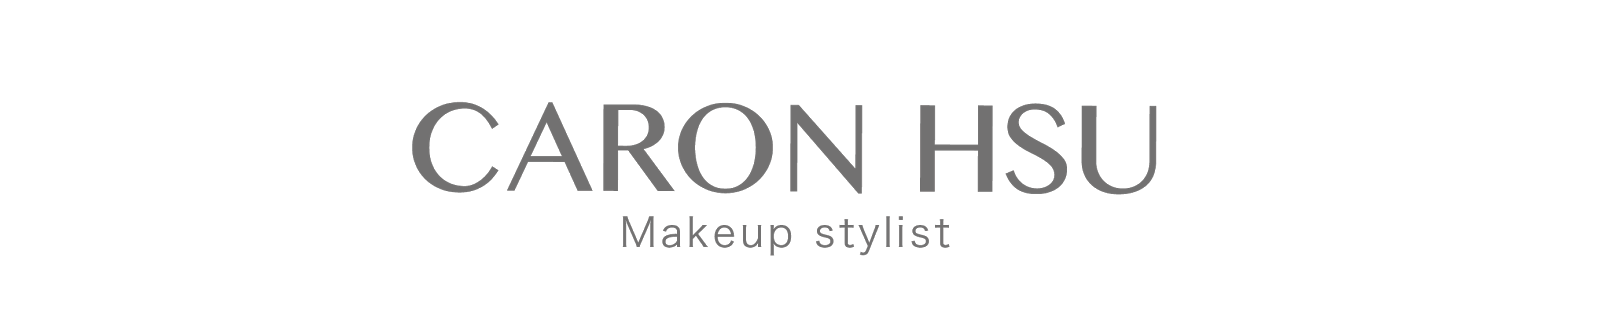 CARON HSU Makeup stylist  台中新秘,彰化新秘,新娘秘書Caron